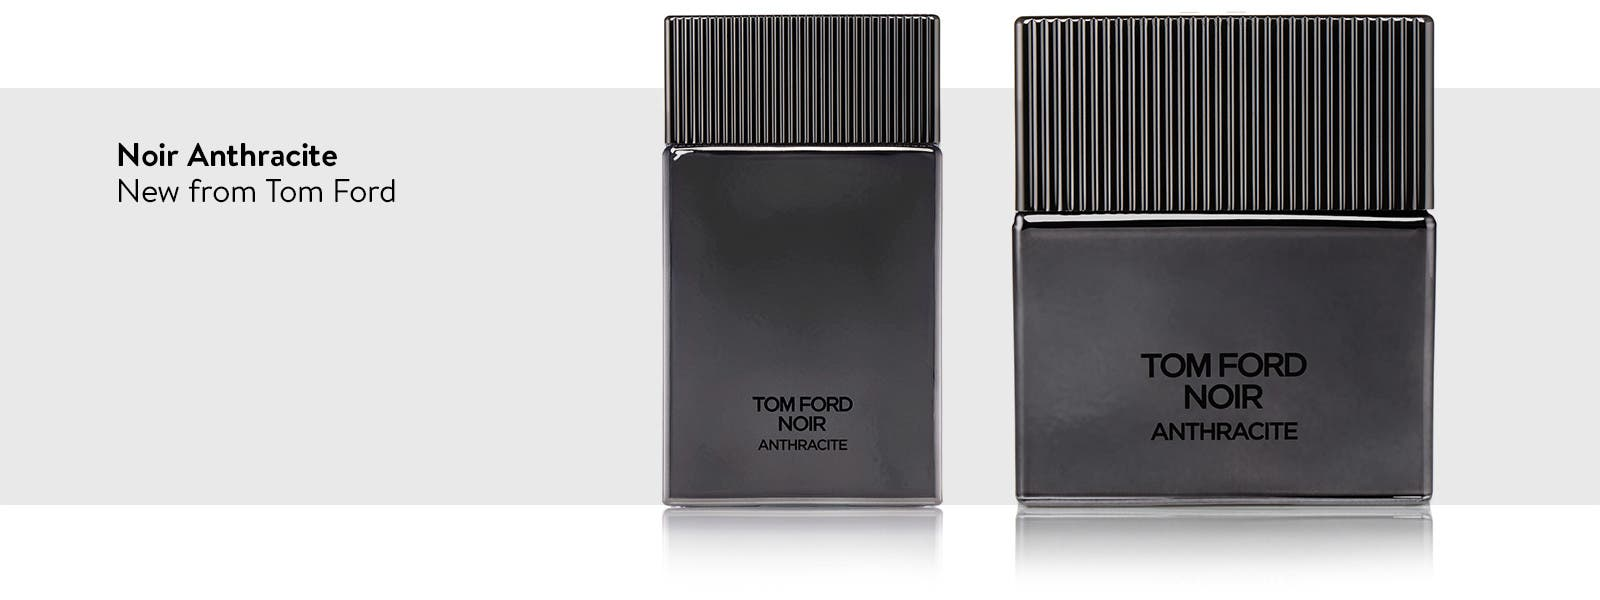 Noir Anthracite: new from Tom Ford.